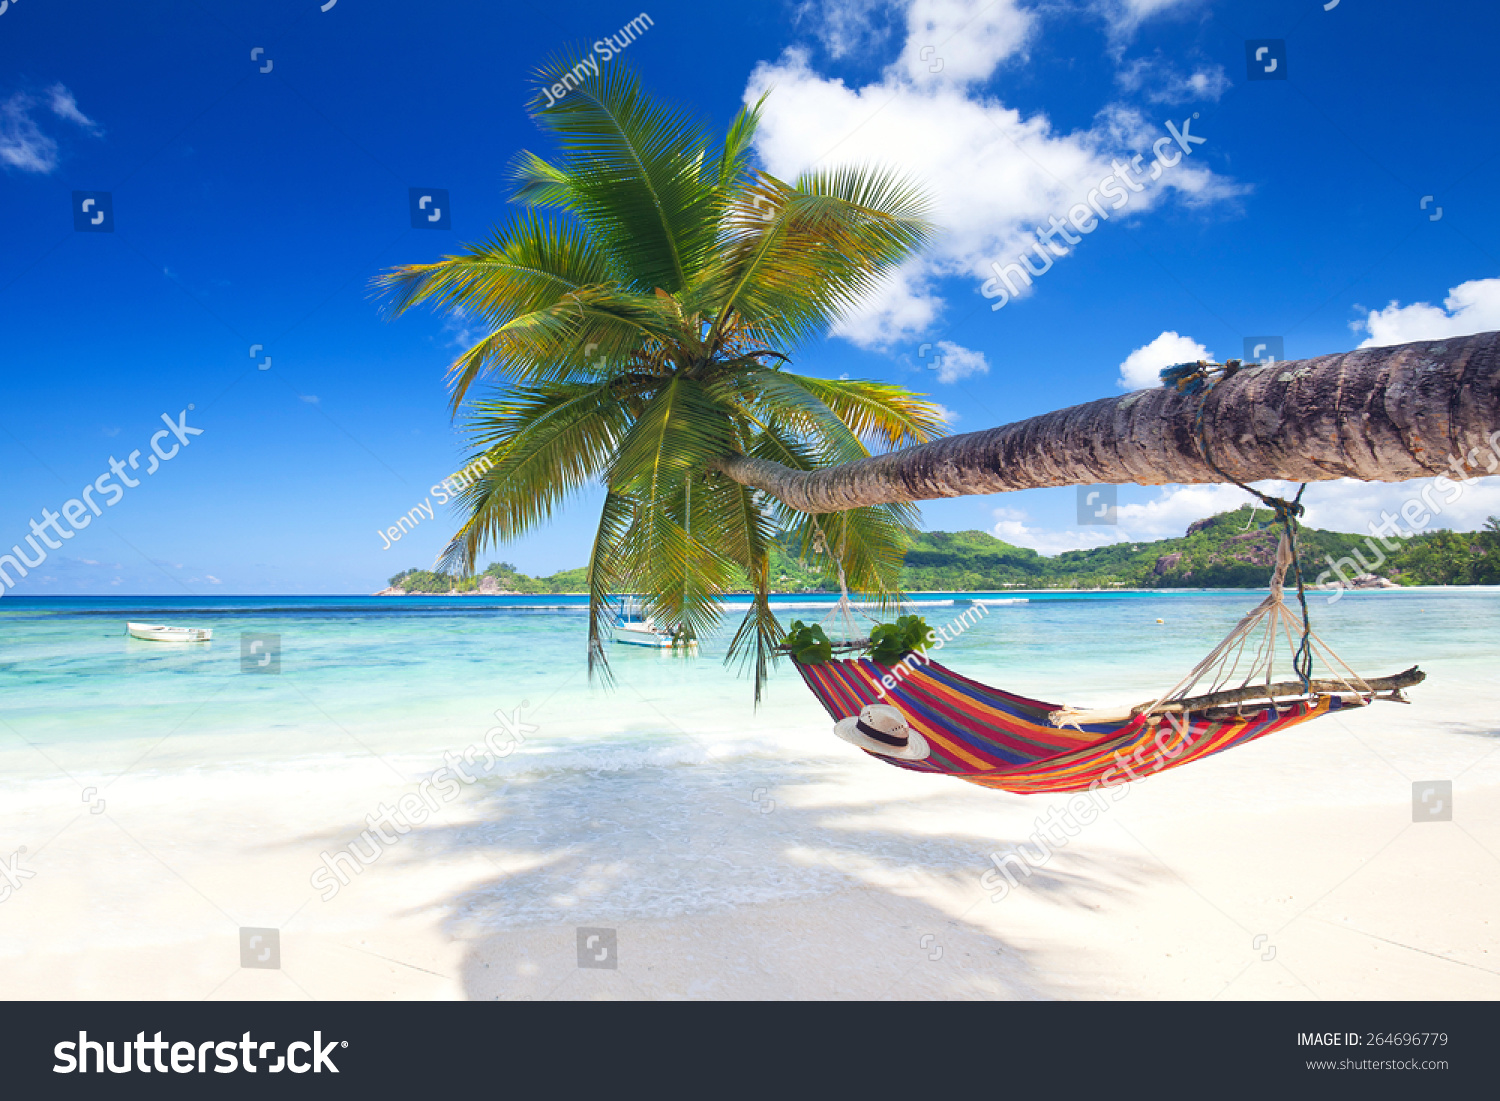 Hd Tropical Island Beach Paradise Wallpapers And Backgrounds: Perfect Tropical Paradise Beach Seychelles Island Stock